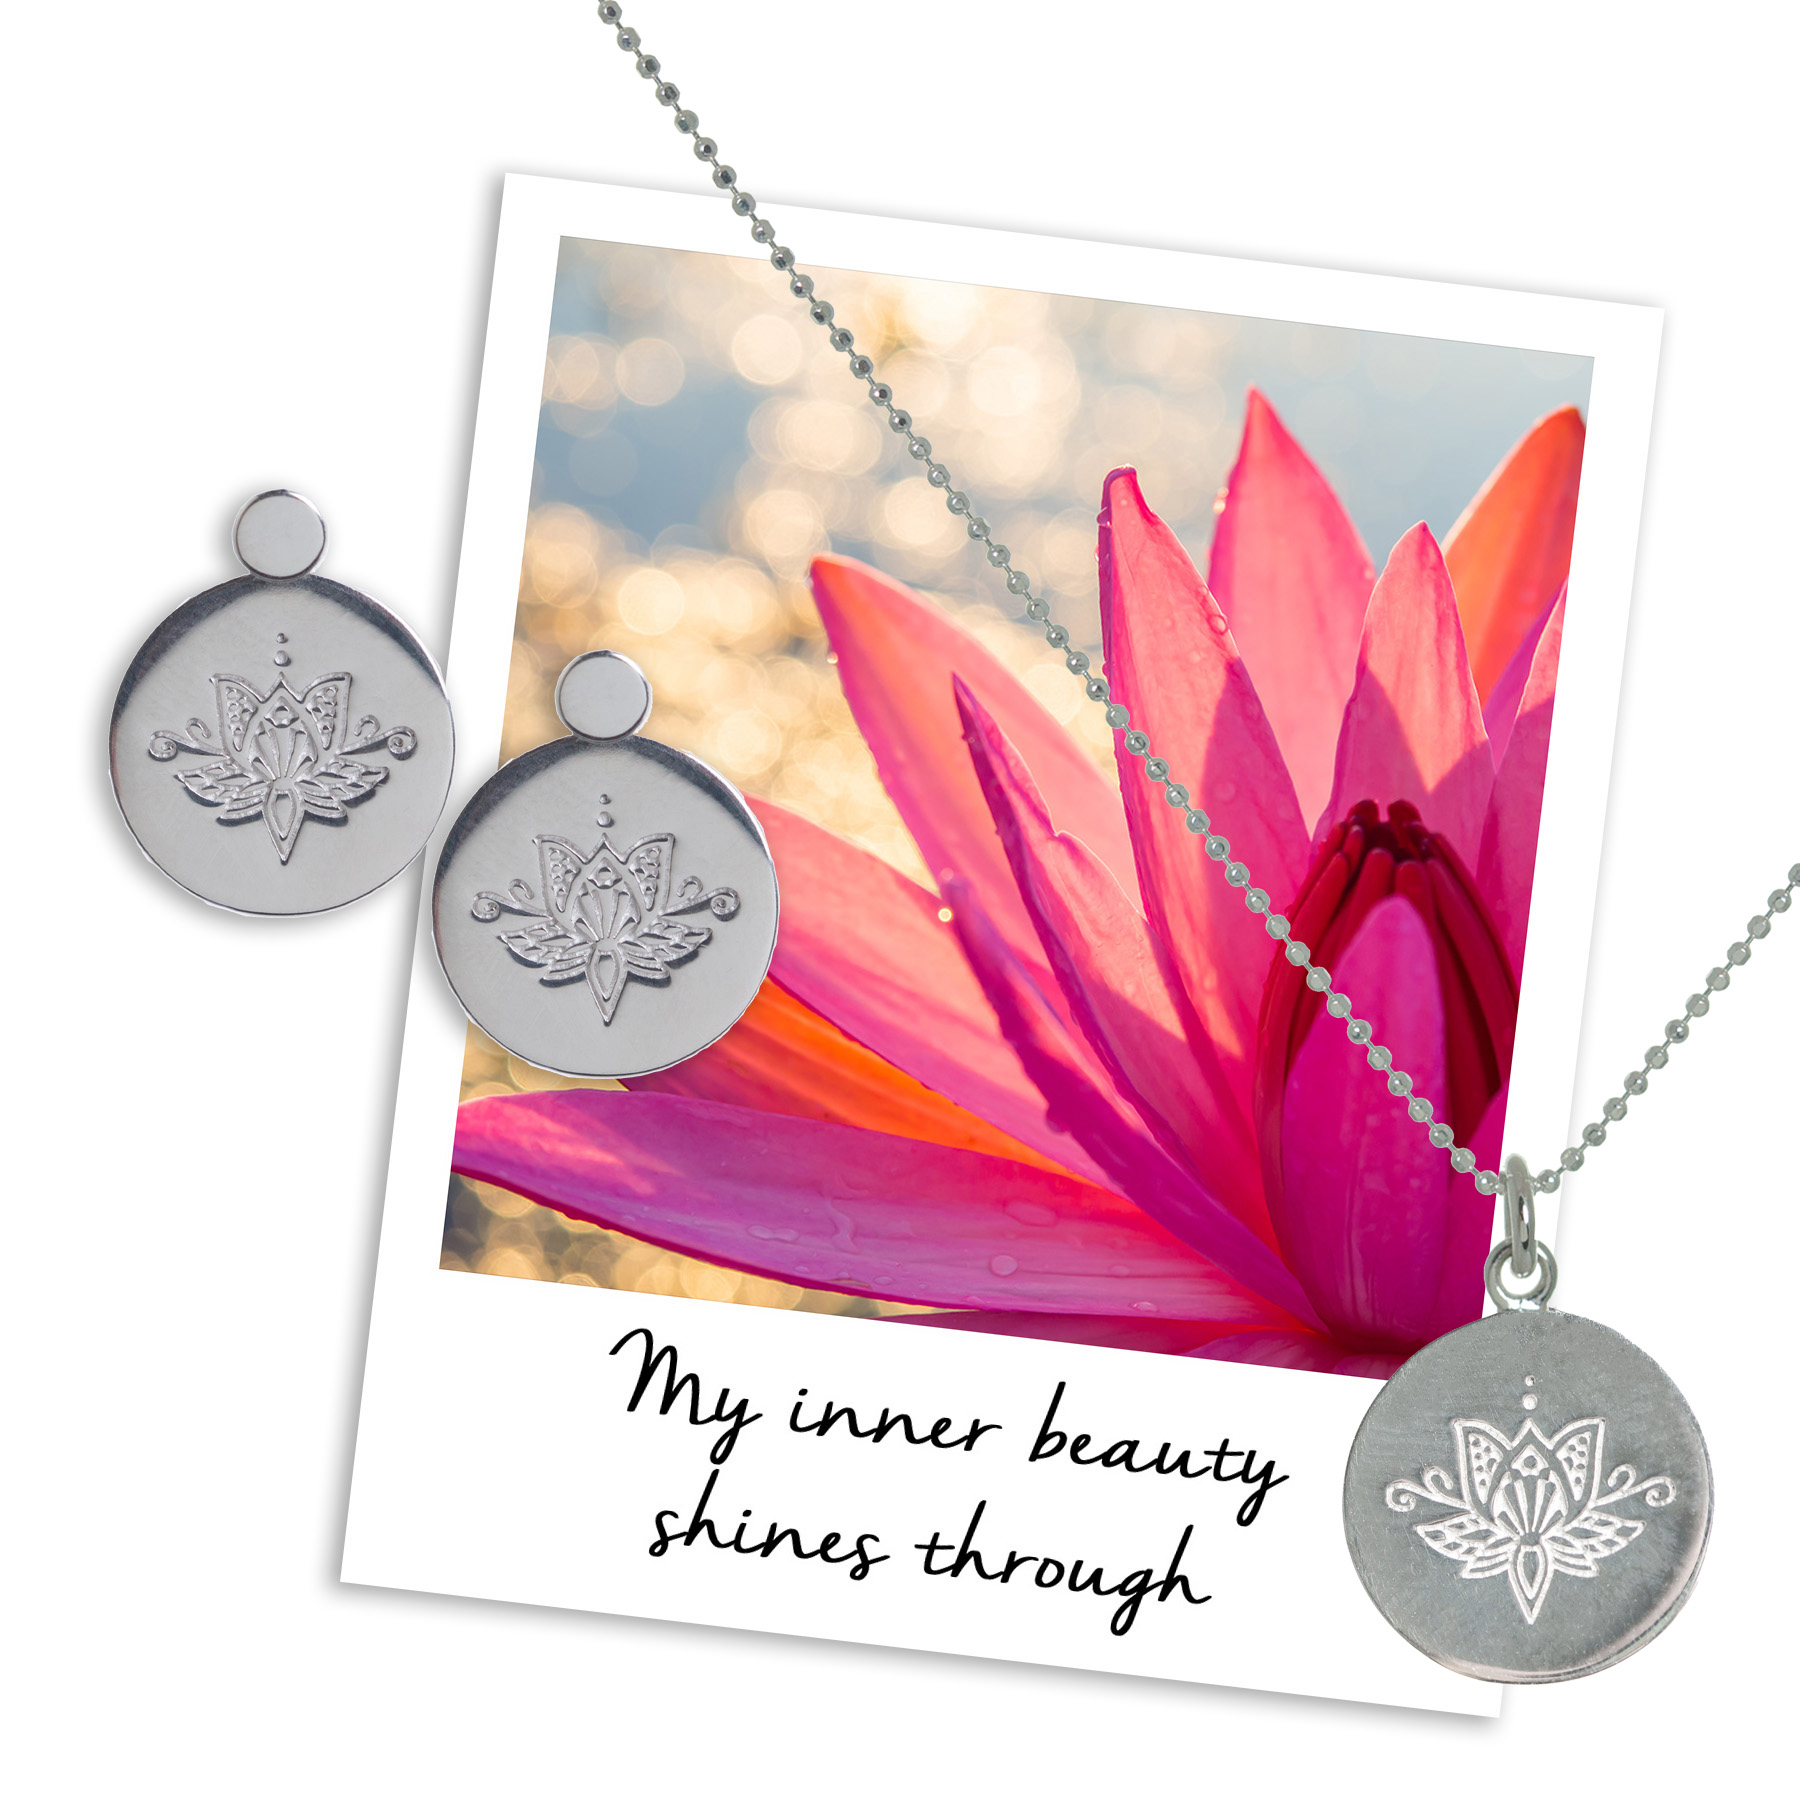 my inner beauty shines through - Lotus Earrings & Necklace